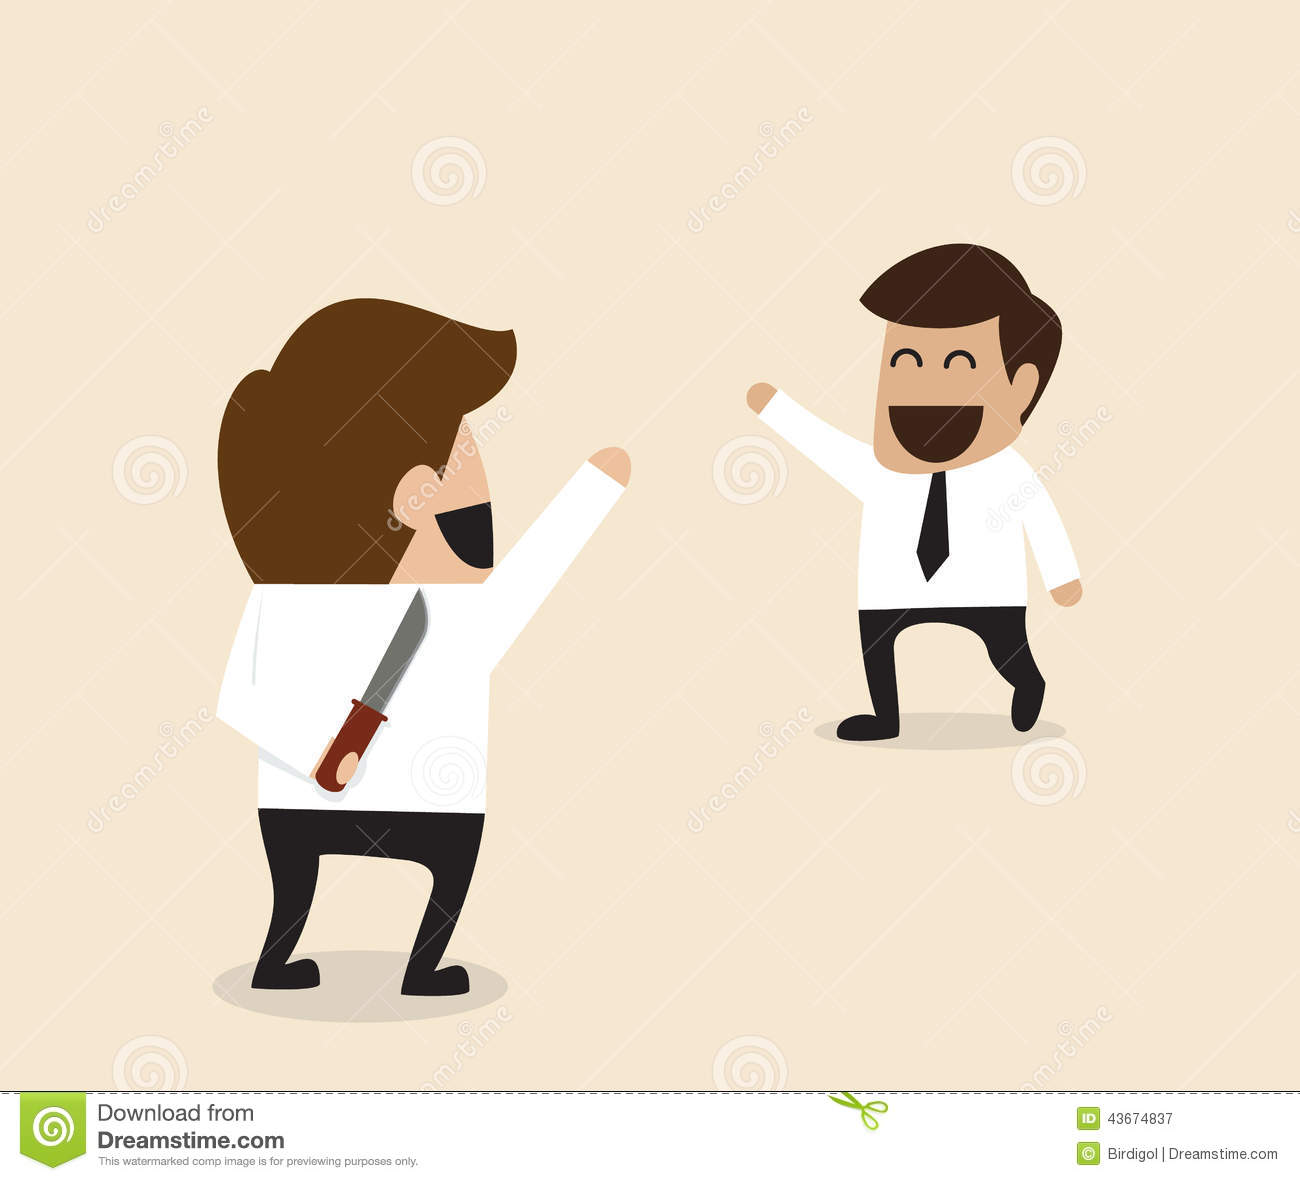 Businessman Greeting His Friend With Knife Behind The Back